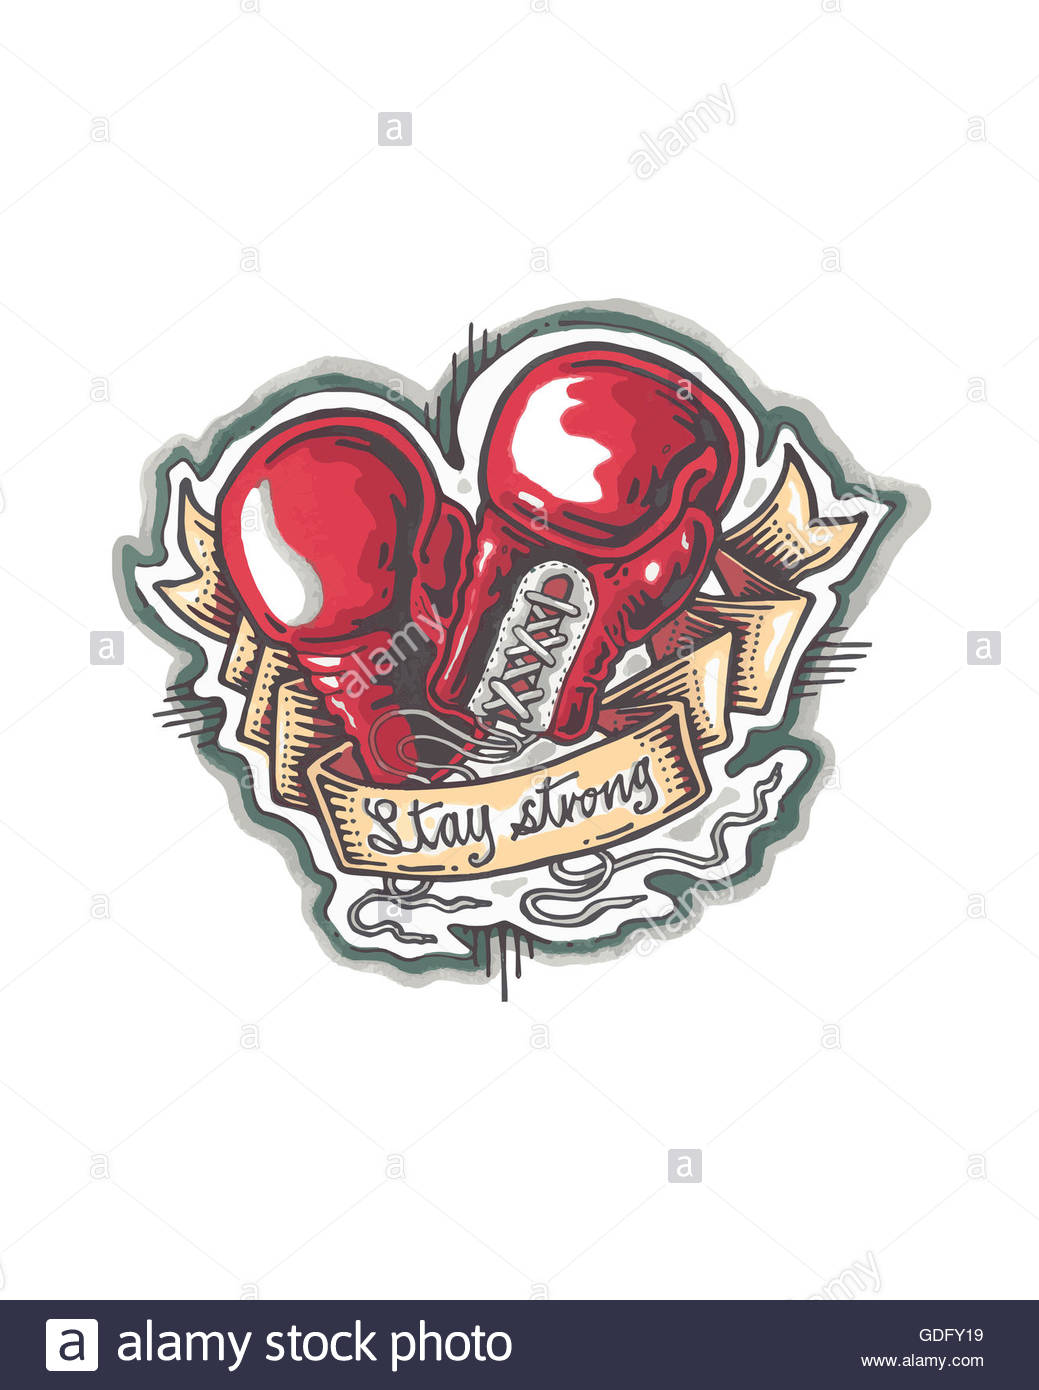 1039x1390 Hand Drawn Illustration Or Drawing Of A Pair Of Boxing Gloves